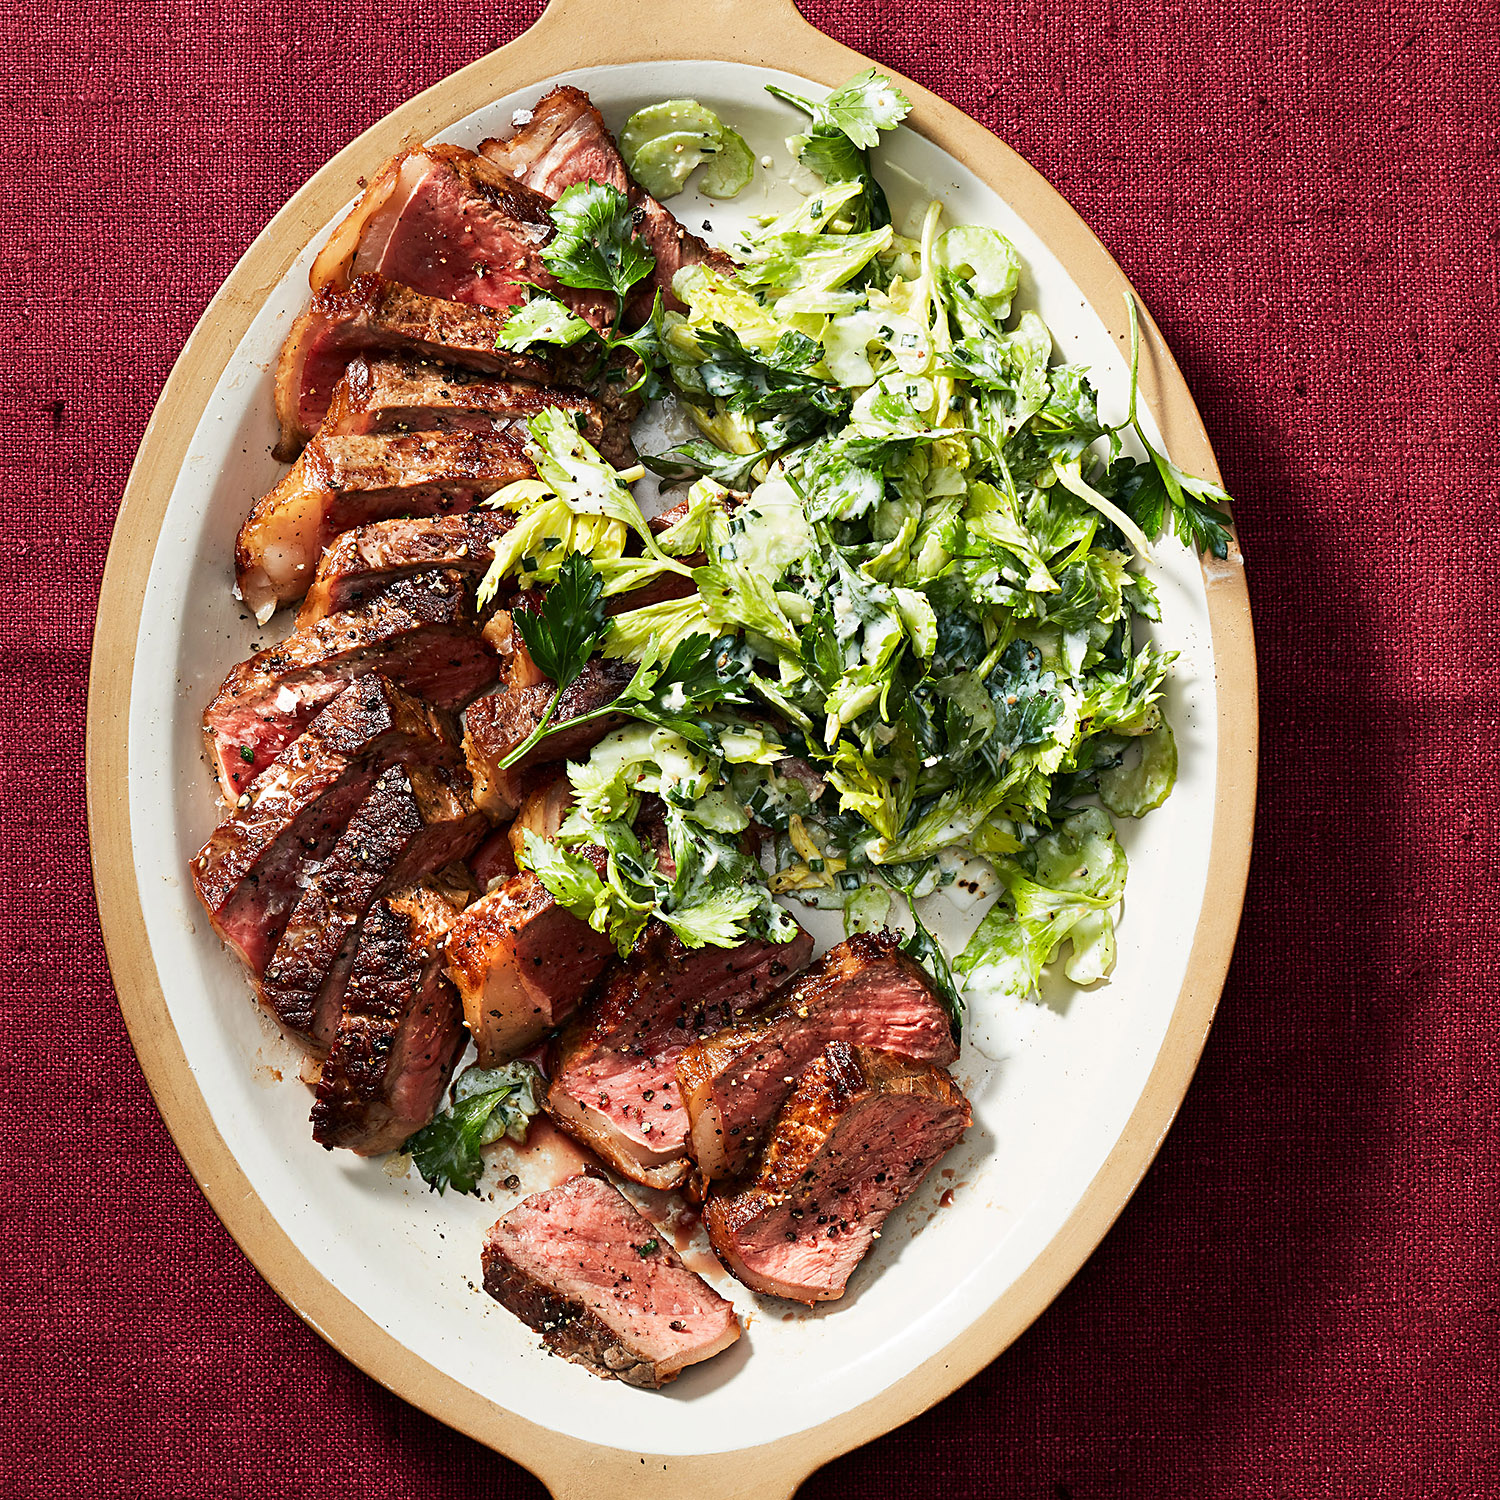 Seared Steaks with Parsley & Celery Salad